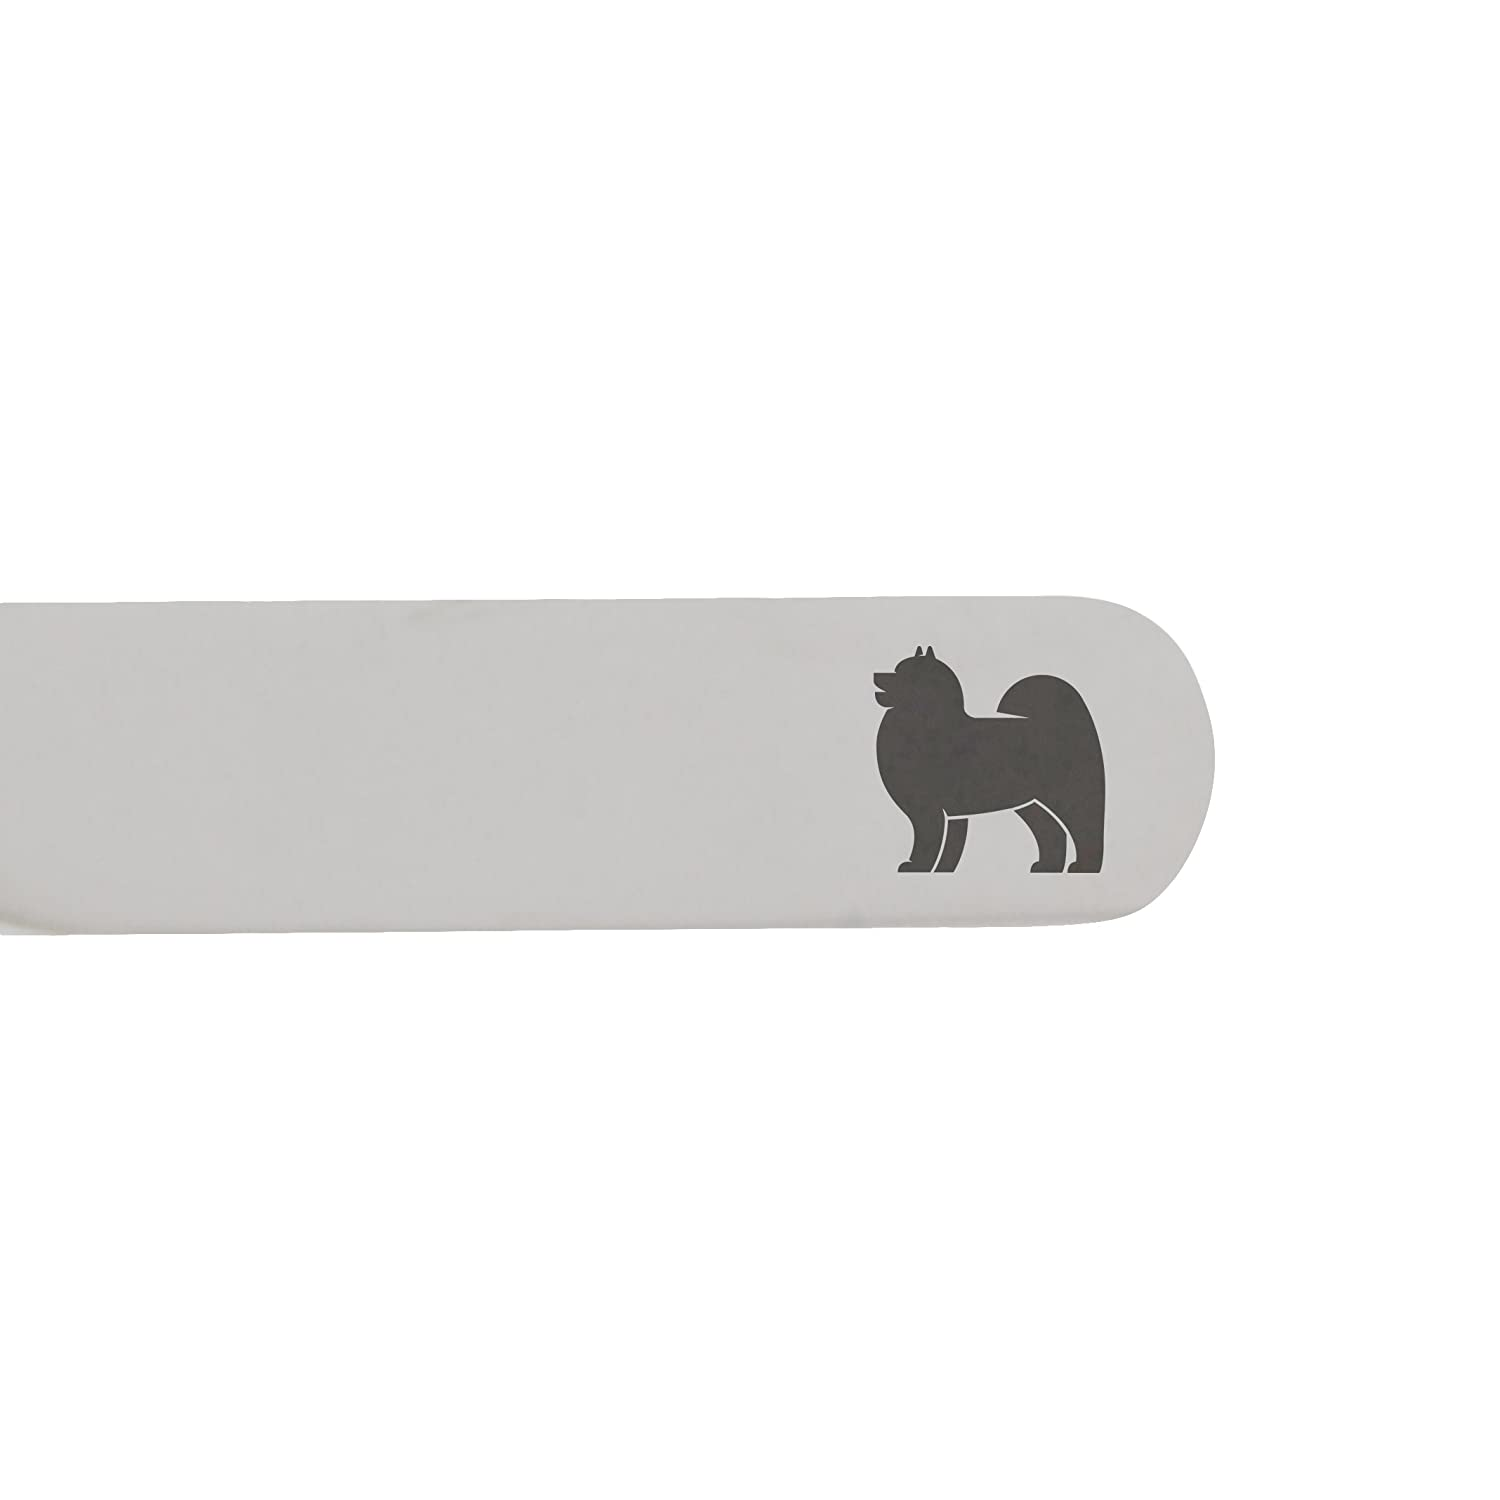 Made In USA MODERN GOODS SHOP Stainless Steel Collar Stays With Laser Engraved Samoyed Design 2.5 Inch Metal Collar Stiffeners